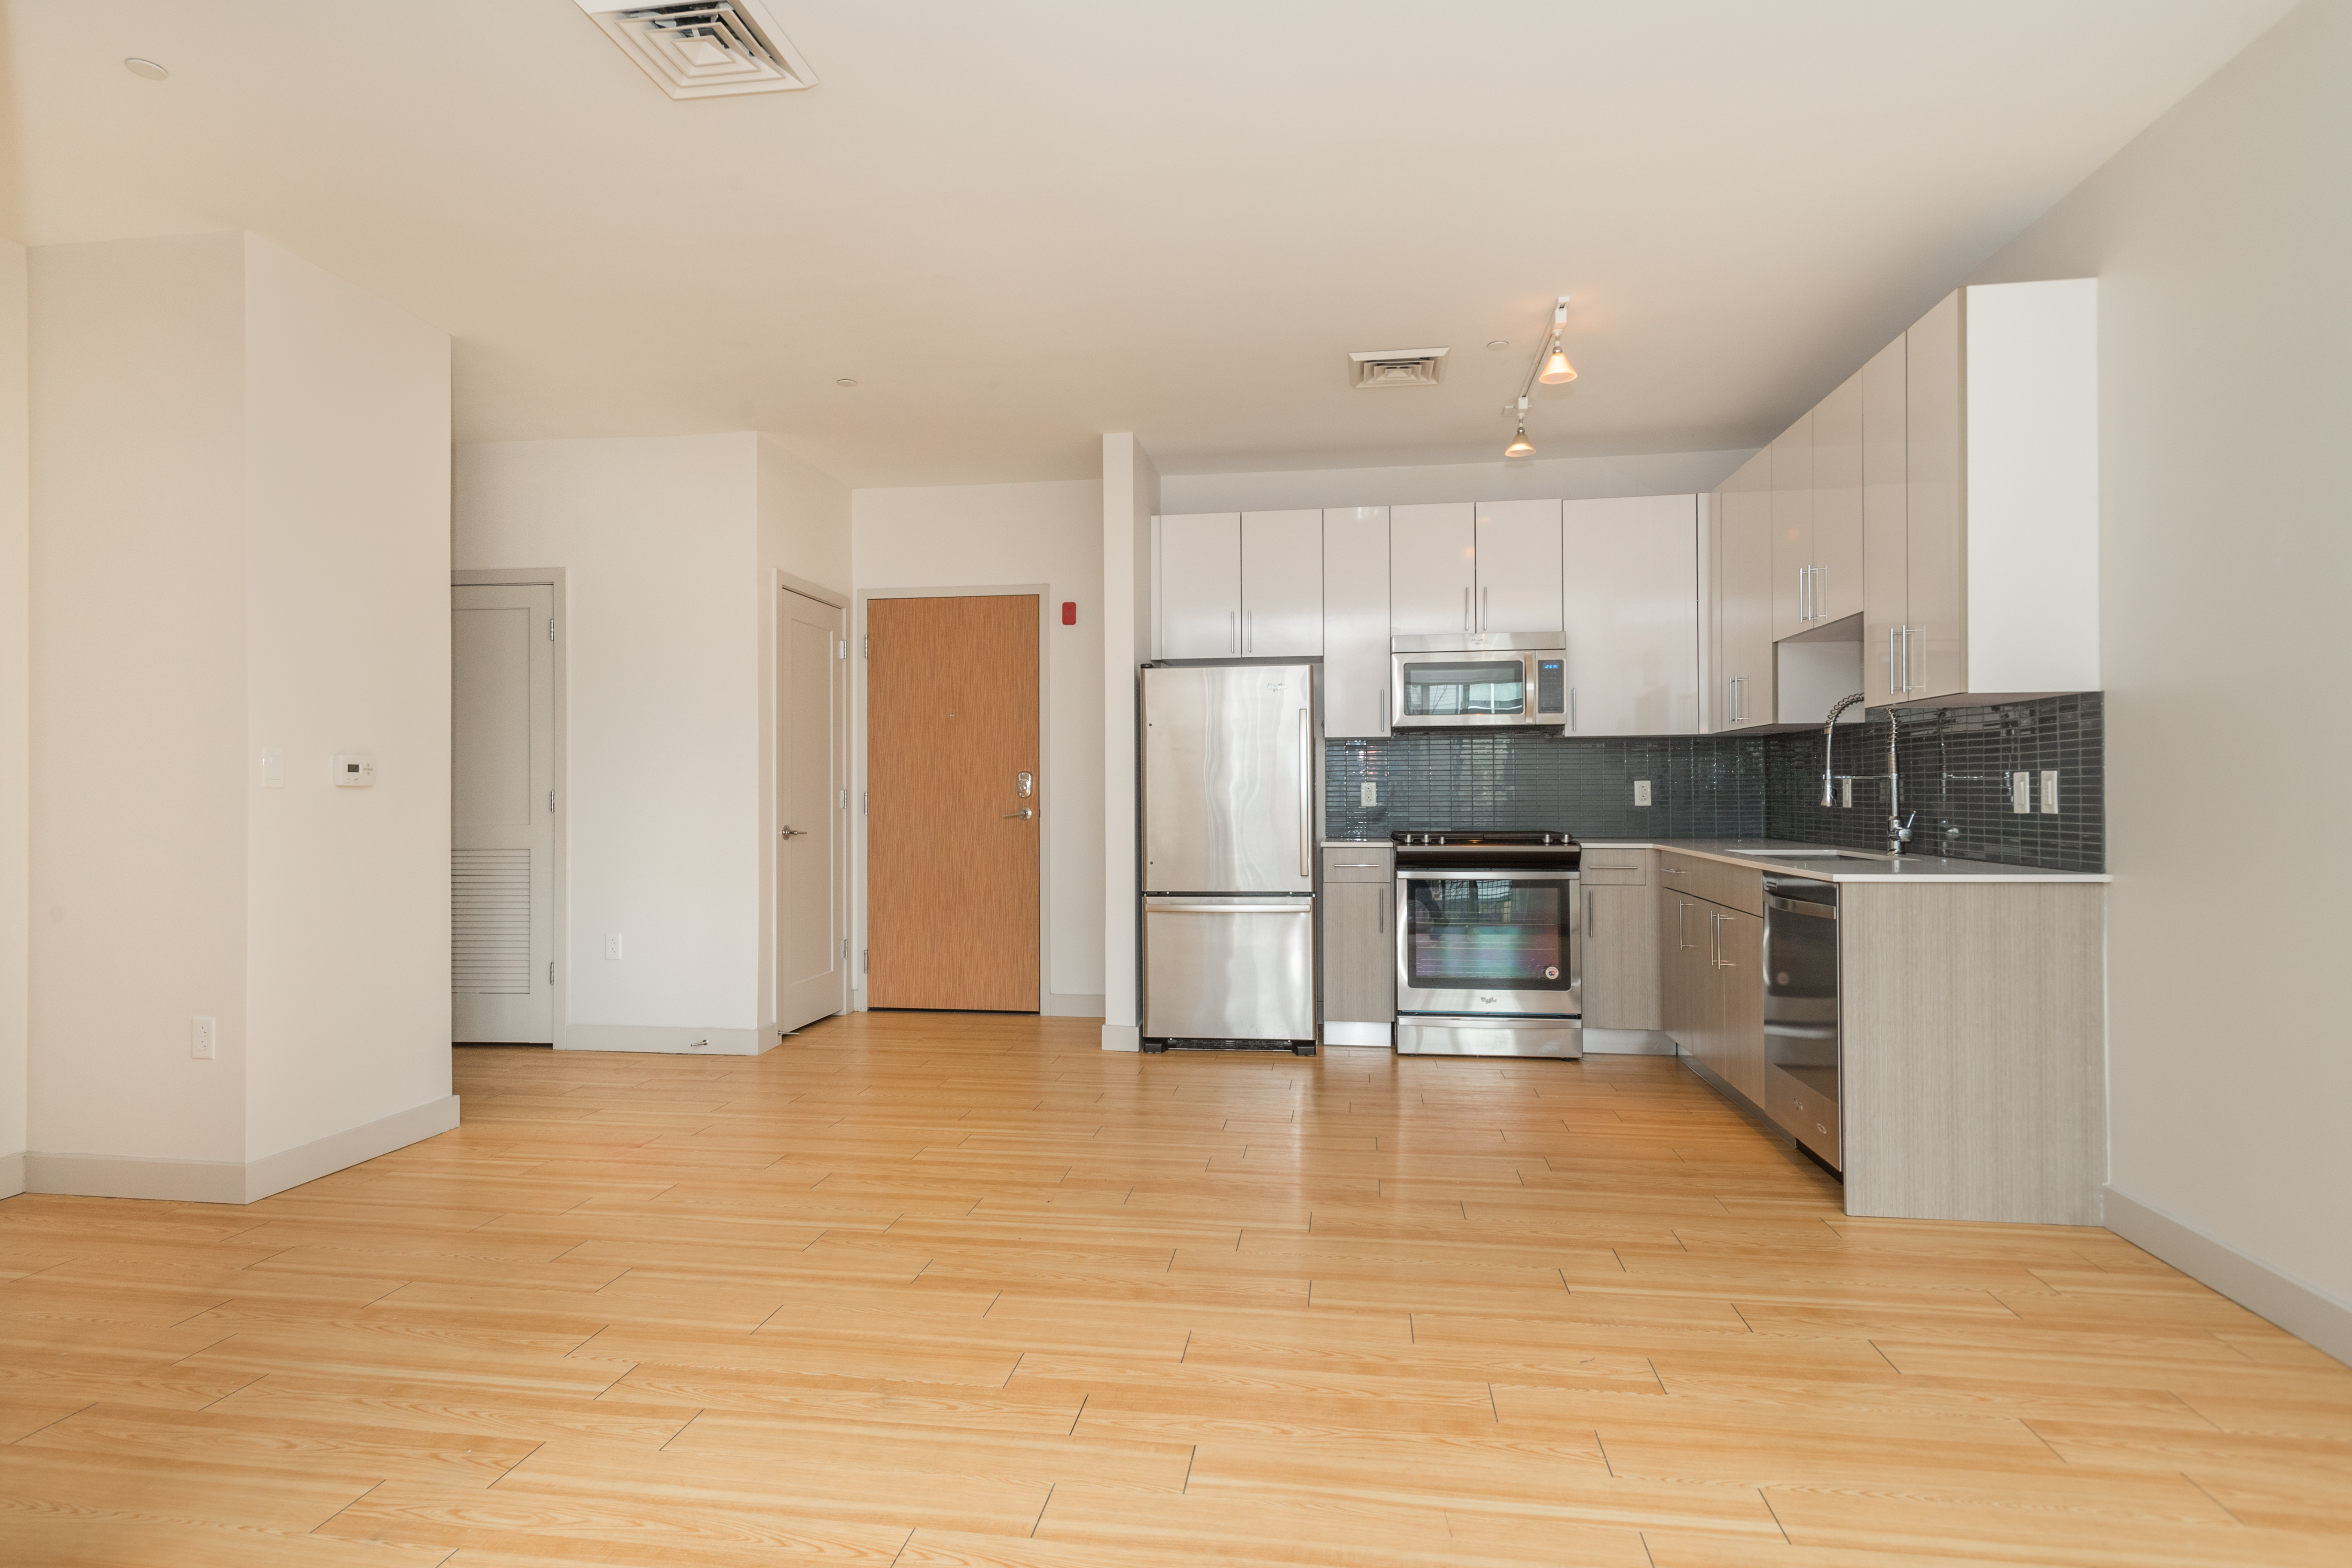 West Square Apartments for rent